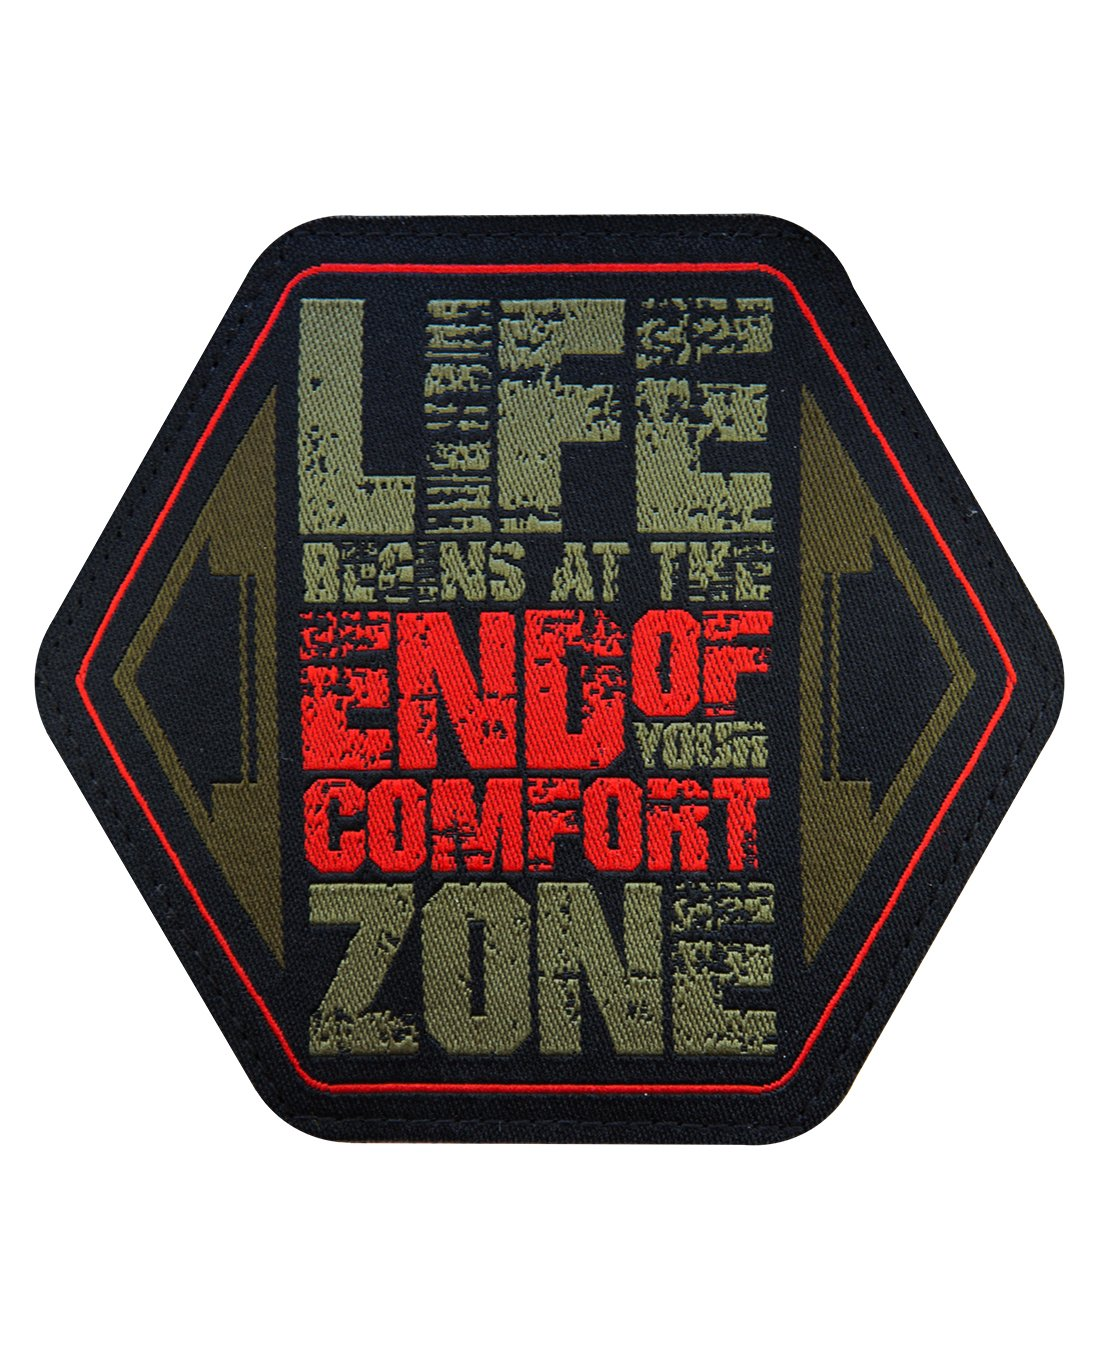 Life Begins At The End Of Your Comfort Zone Stoff Patch Aufnä her Abzeichen - Oliv Rot Fritz Meinecke